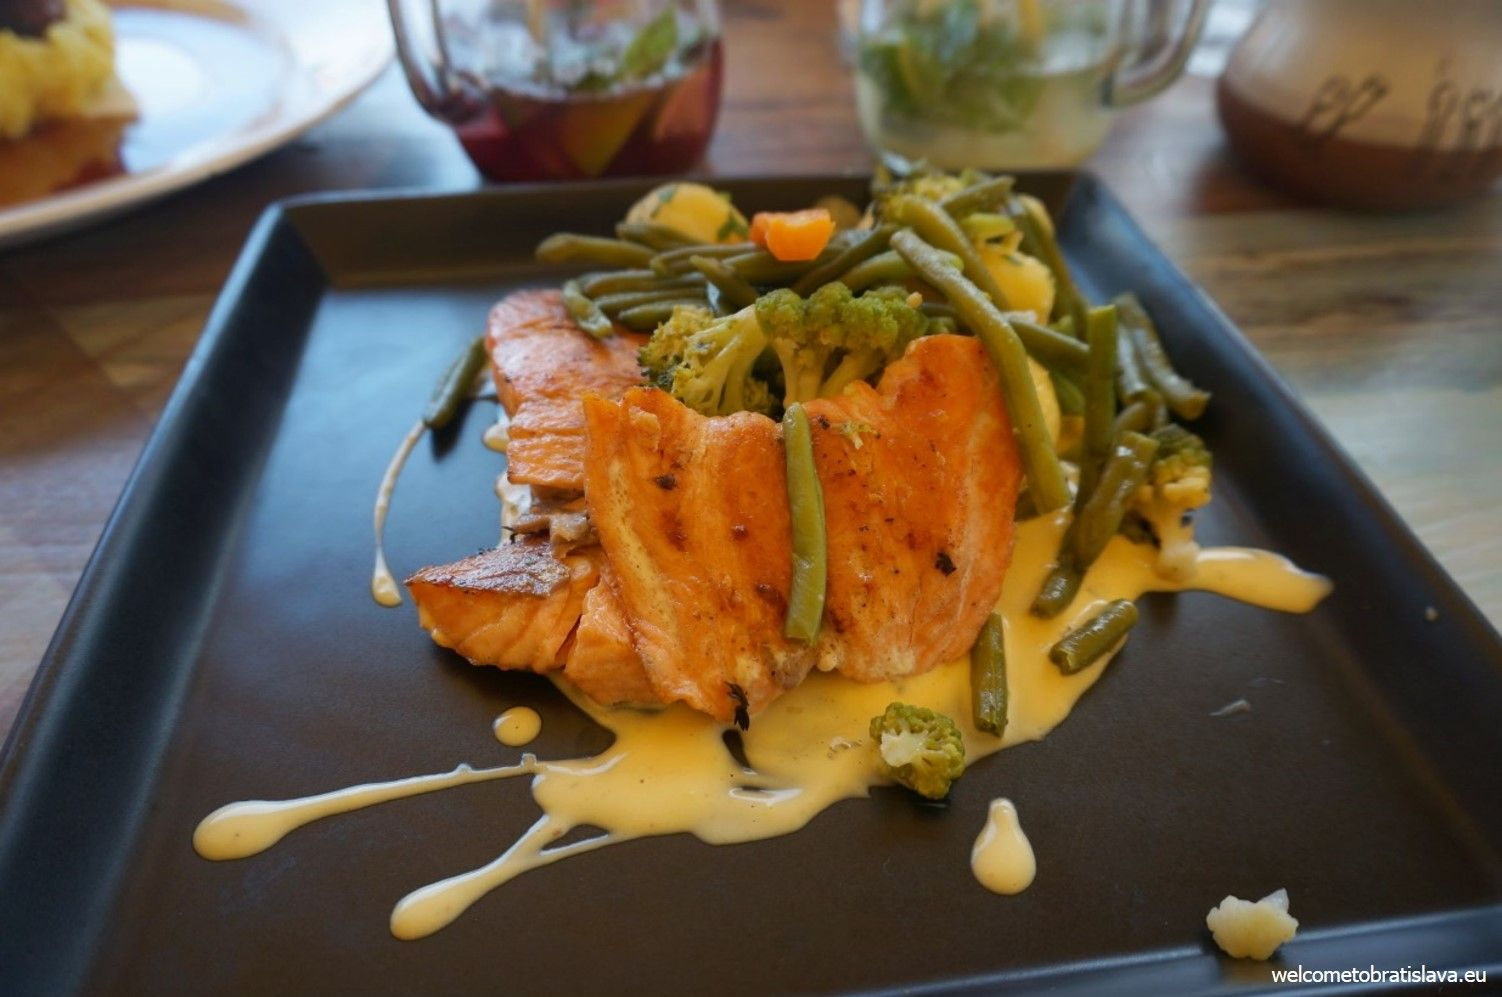 Grilled salmon fillet with Béarnaise sauce